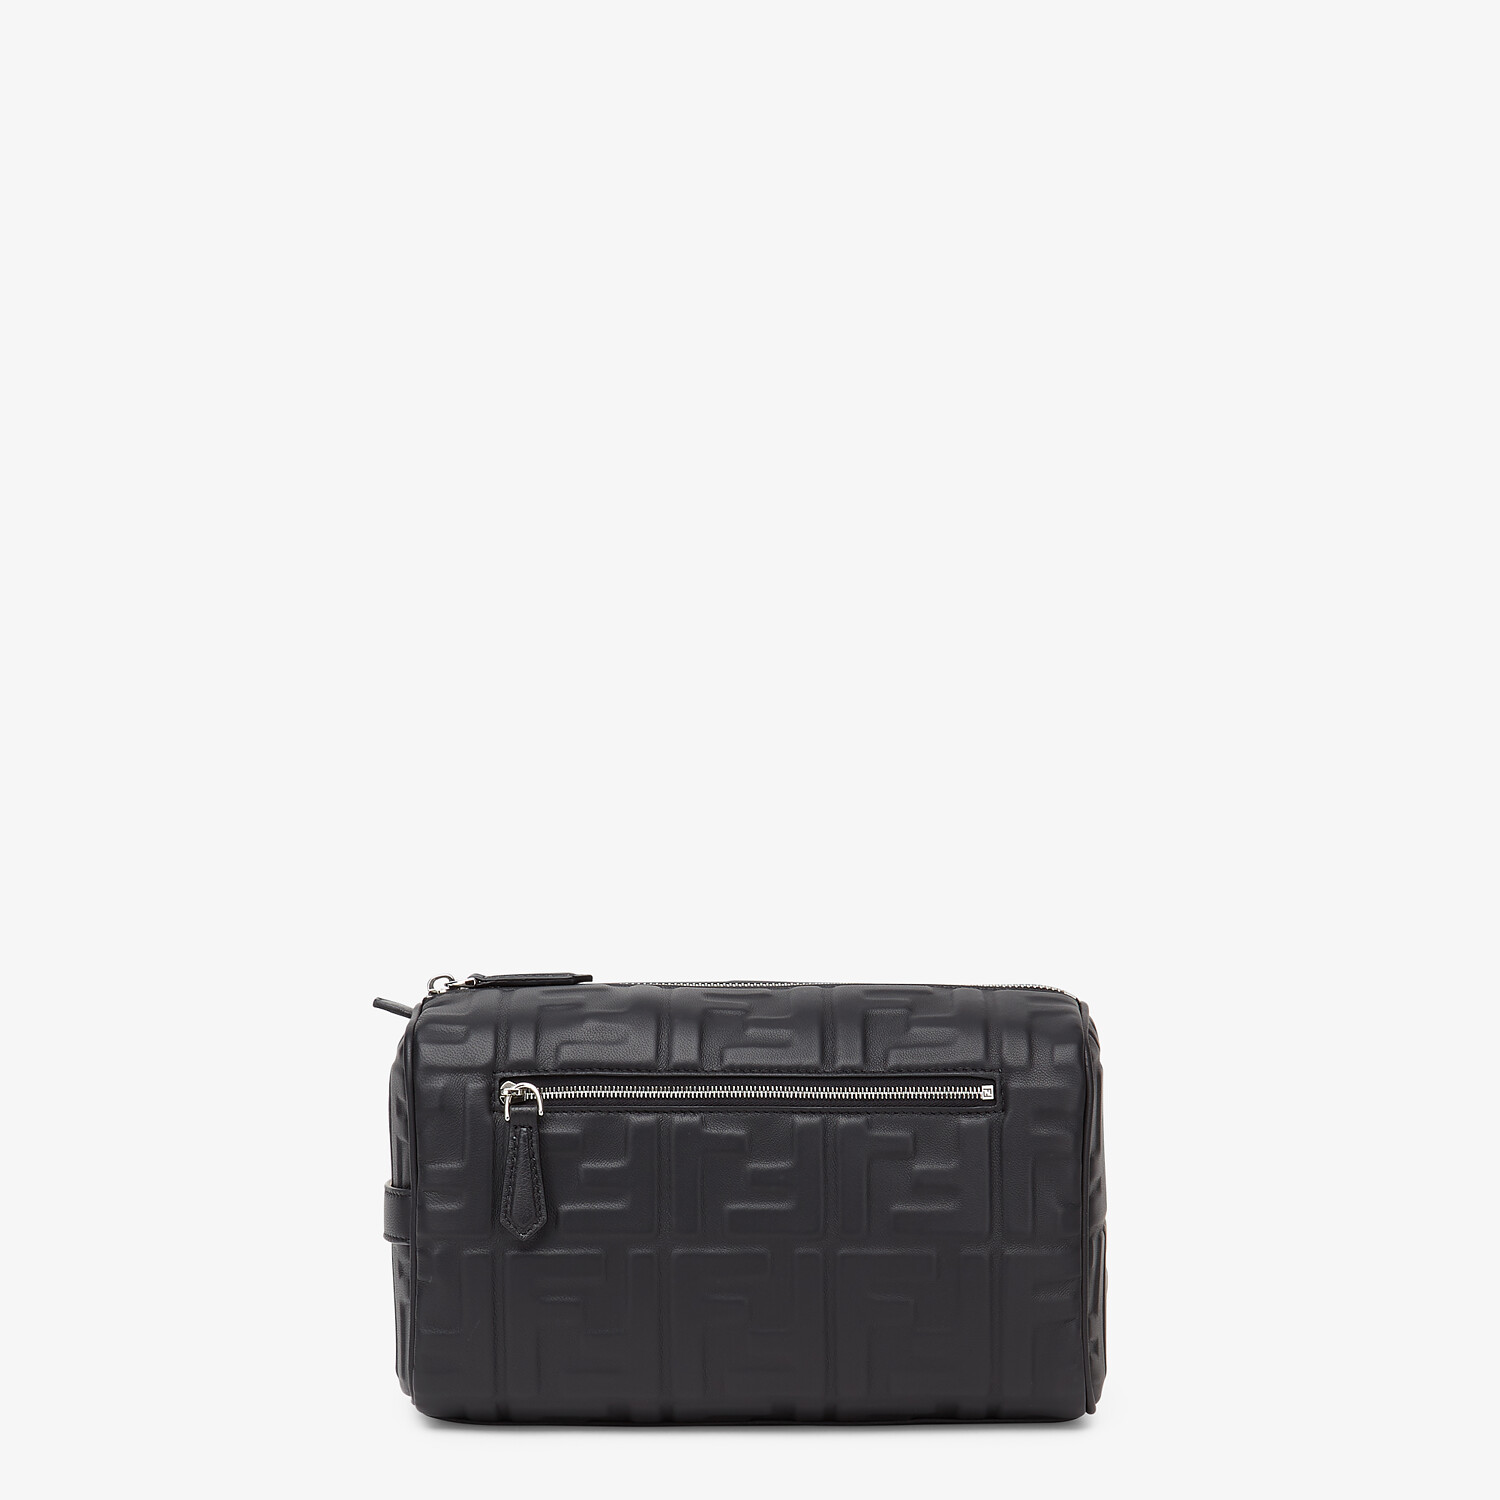 FENDI TRAVEL CASE - Black nappa leather toiletry case - view 1 detail